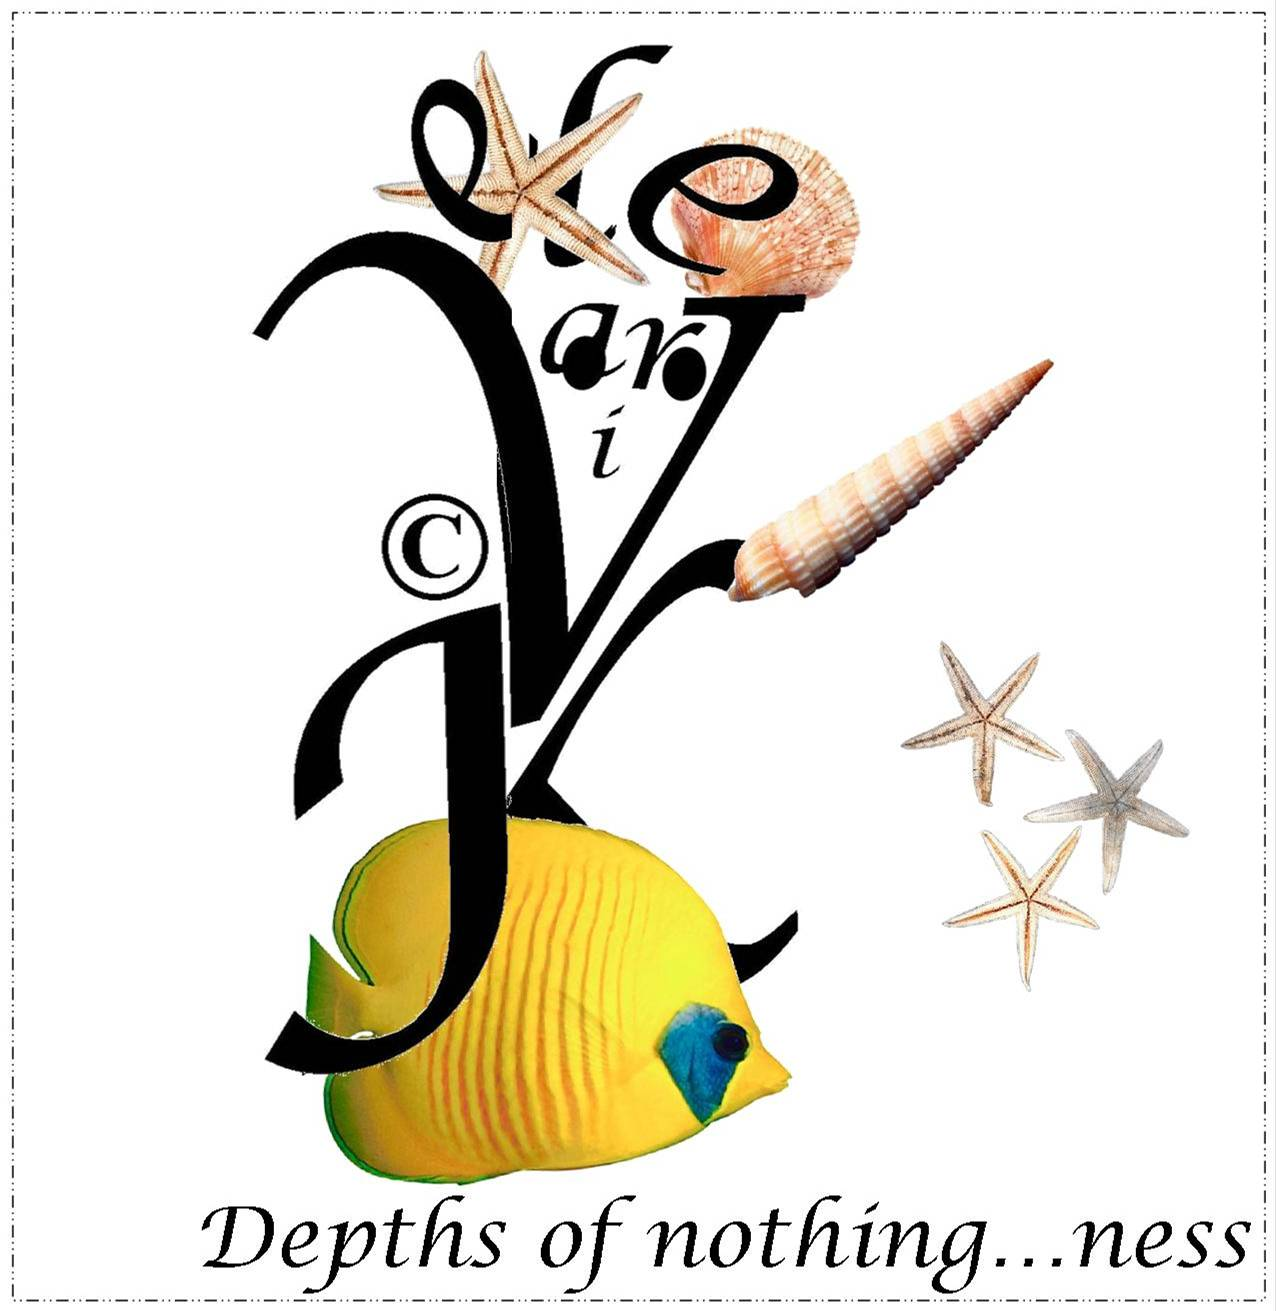 Depths of nothing...ness